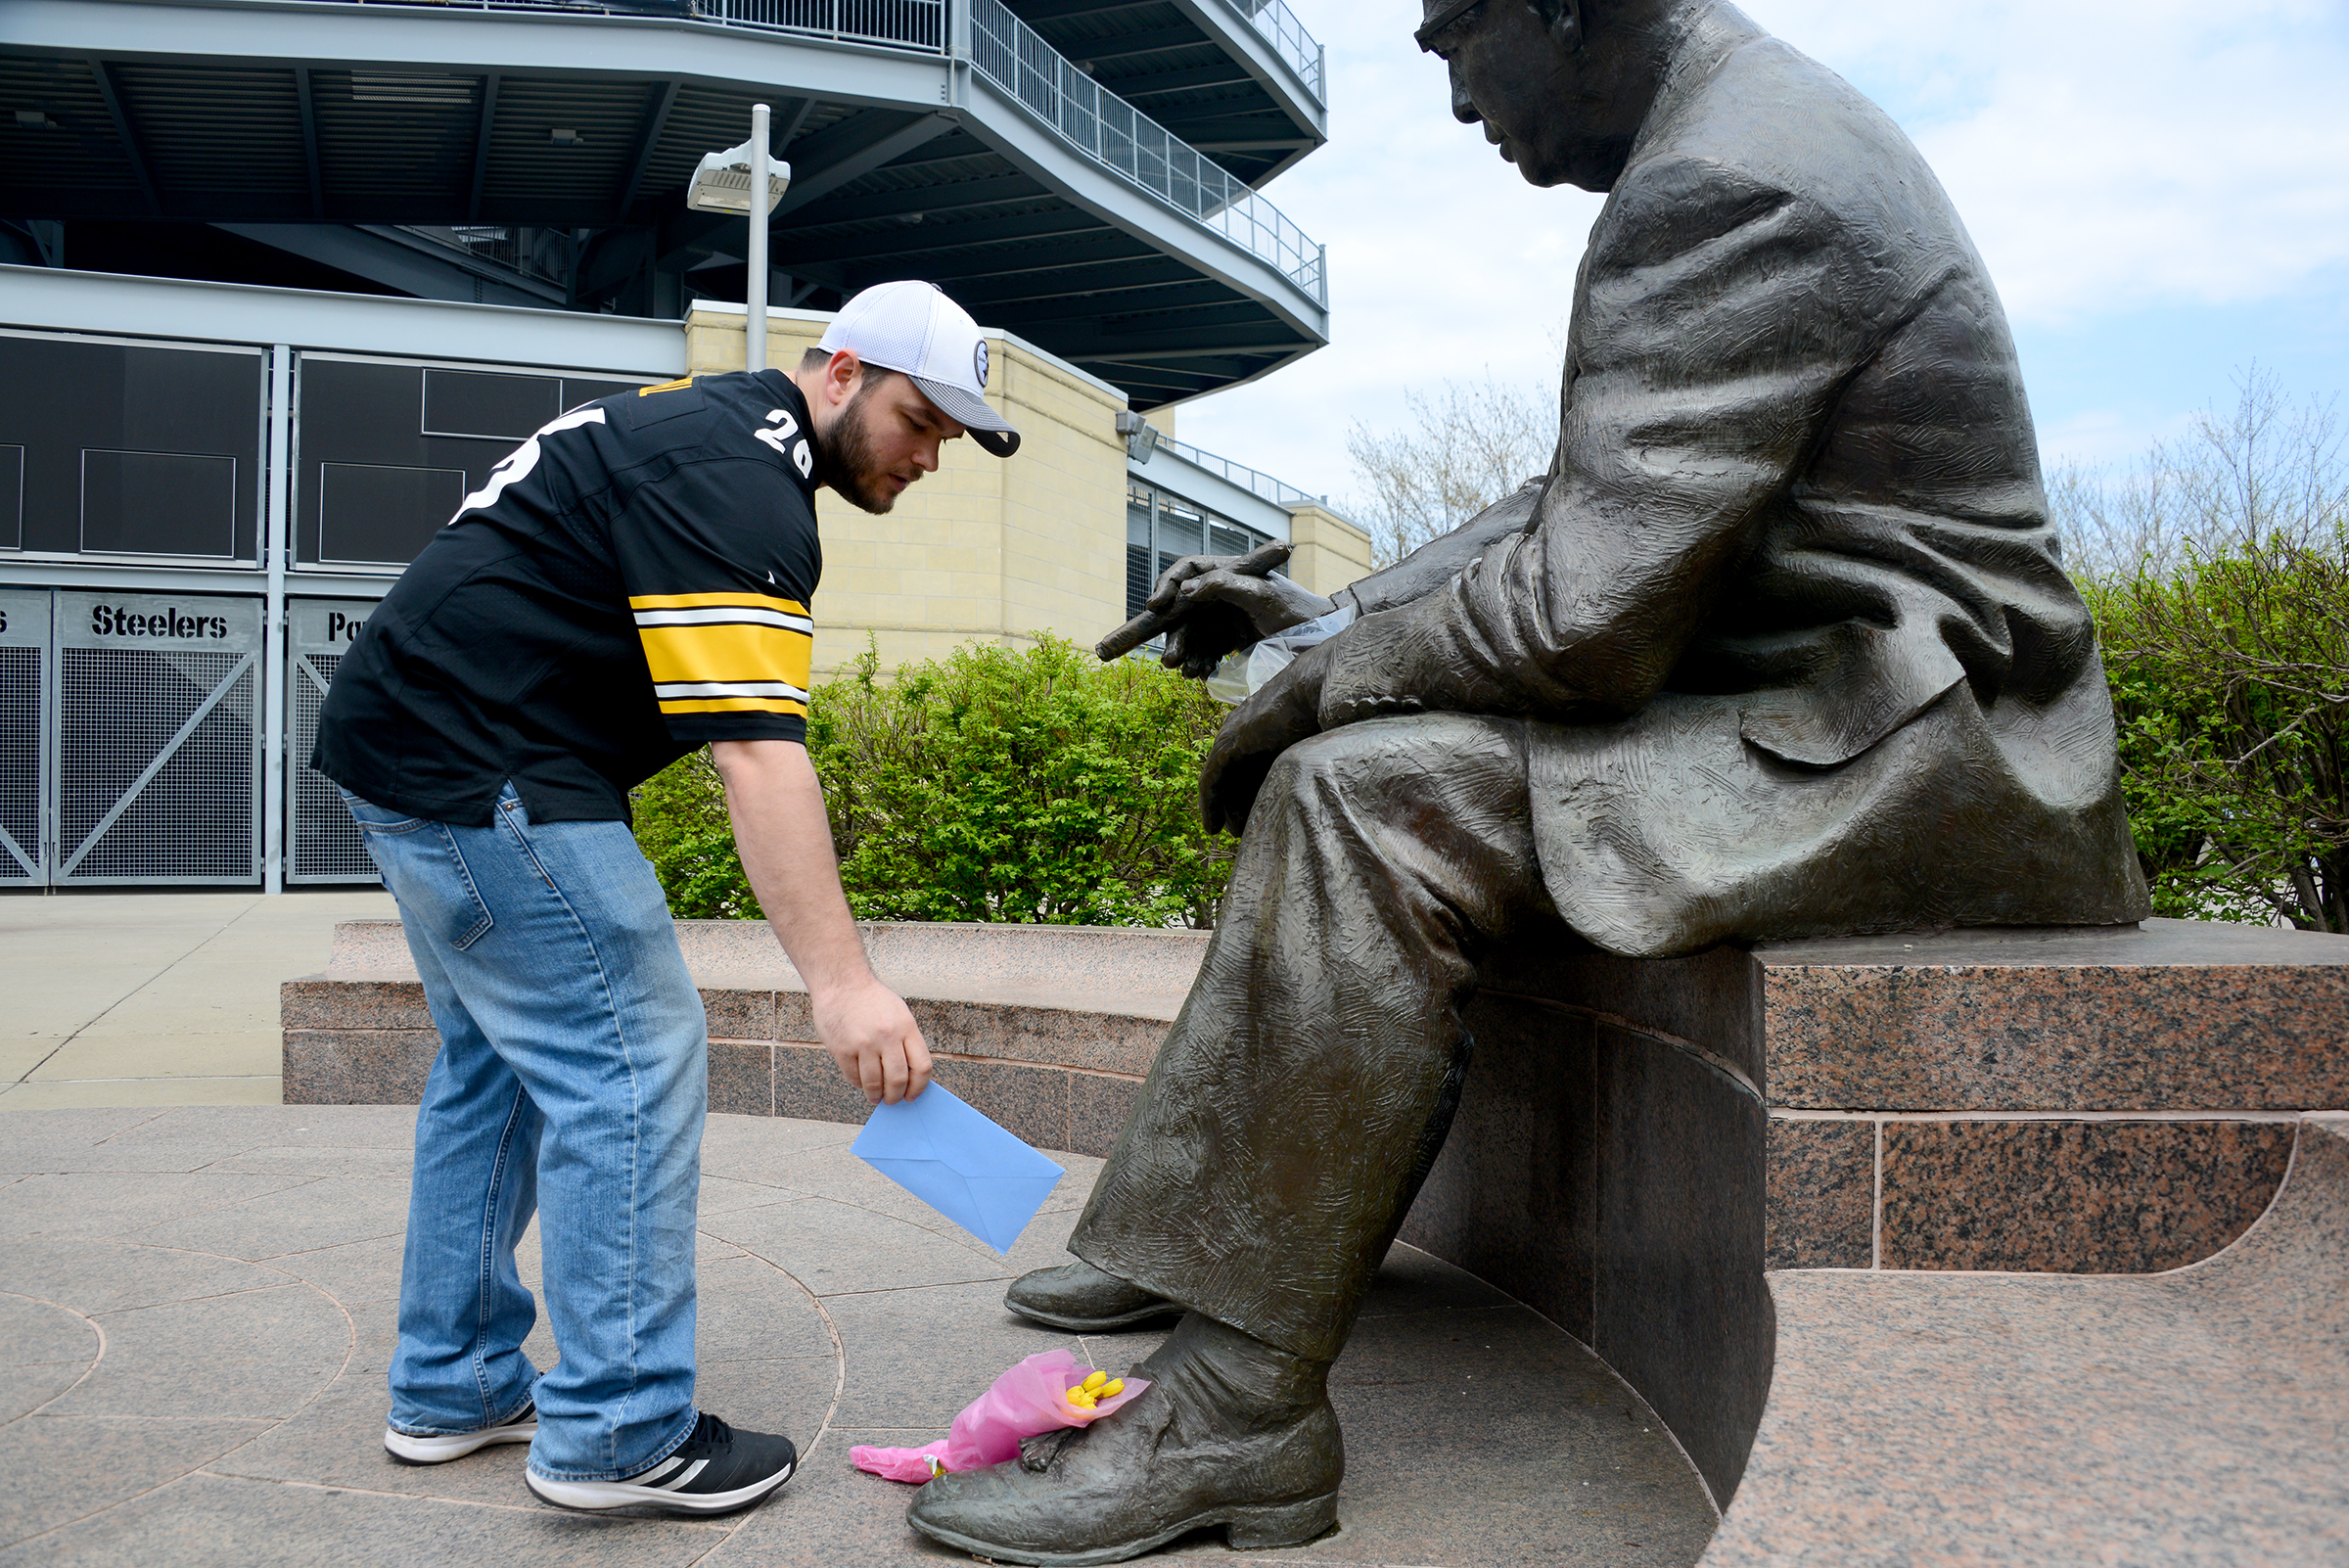 Robert Turner, 31, of Fox Chapel places a card at the Art Rooney statue outside Heinz Field. (Lake Fong/Post-Gazette)